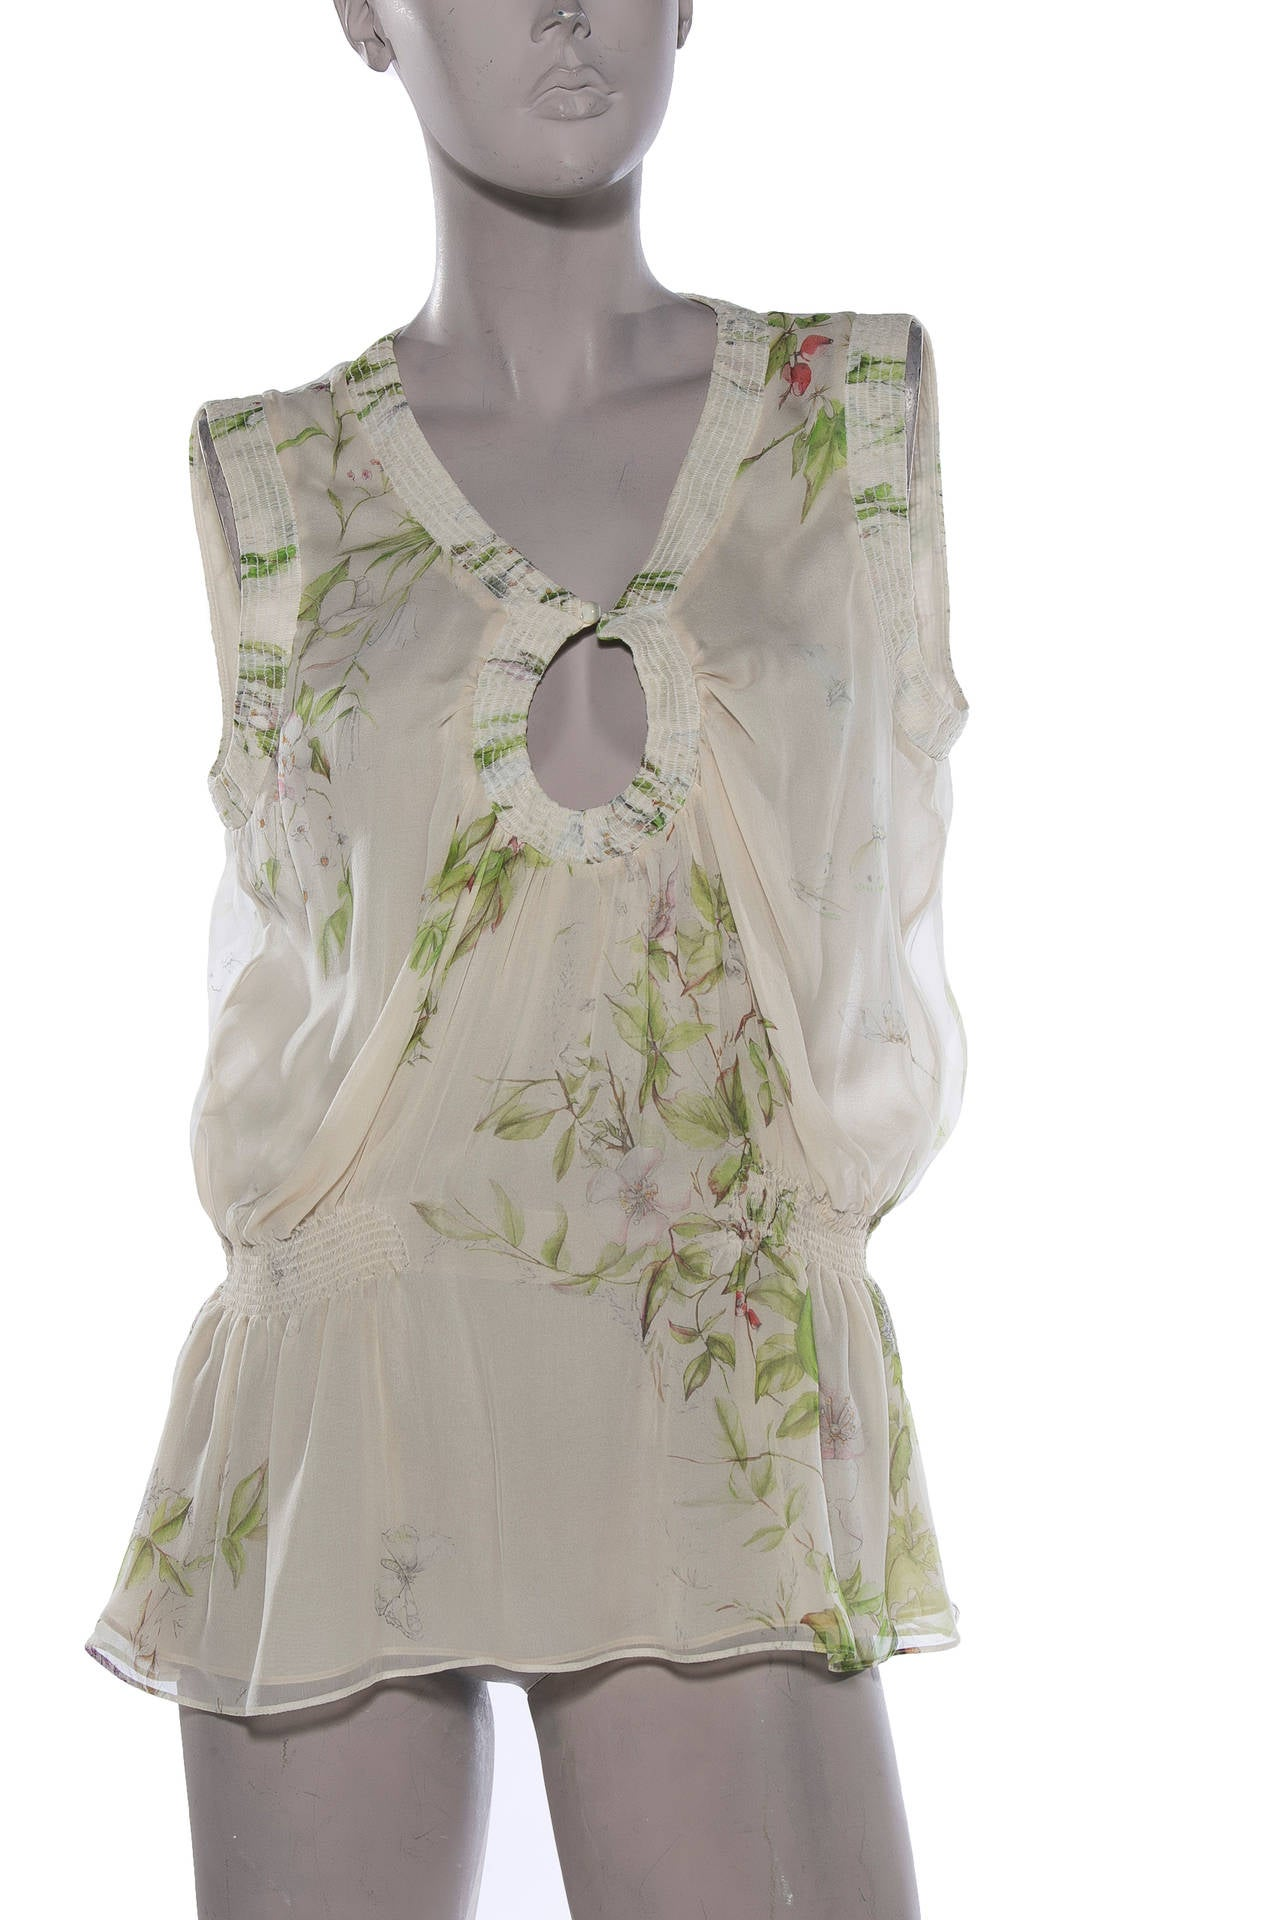 Alexander Mcqueen Spring 2006 cream silk chiffon sleeveless blouse,dogwood trees and butterfly print. Size 44